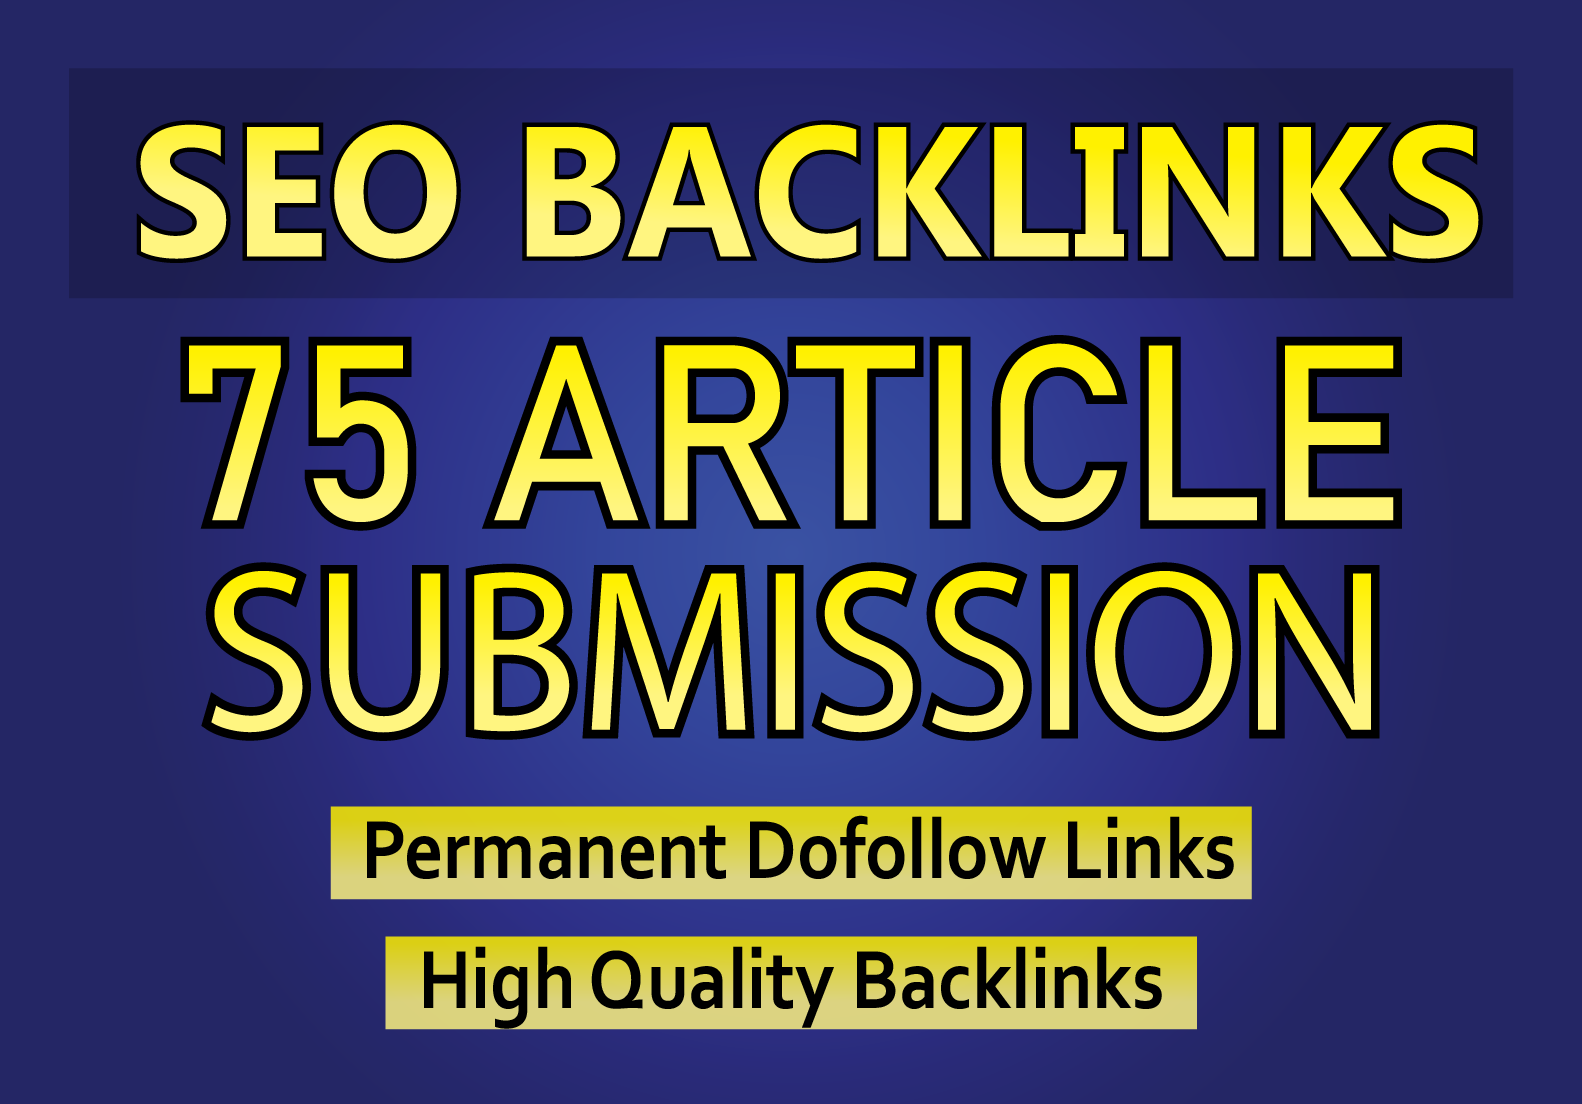 I Will do 75 Article Submission With Unique Domain in 5